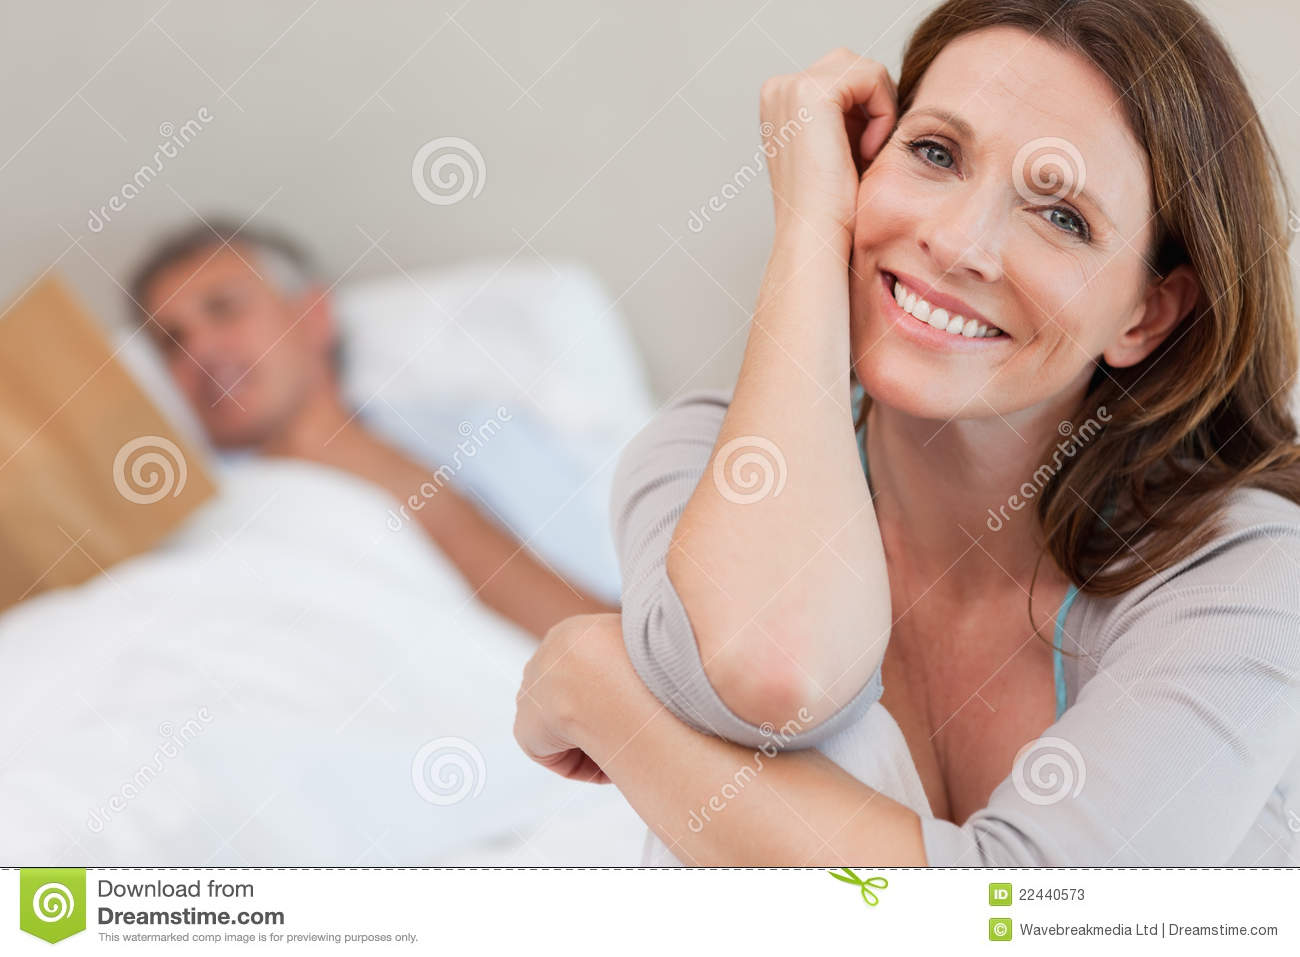 Happy smiling woman on bed with husband reading behind her